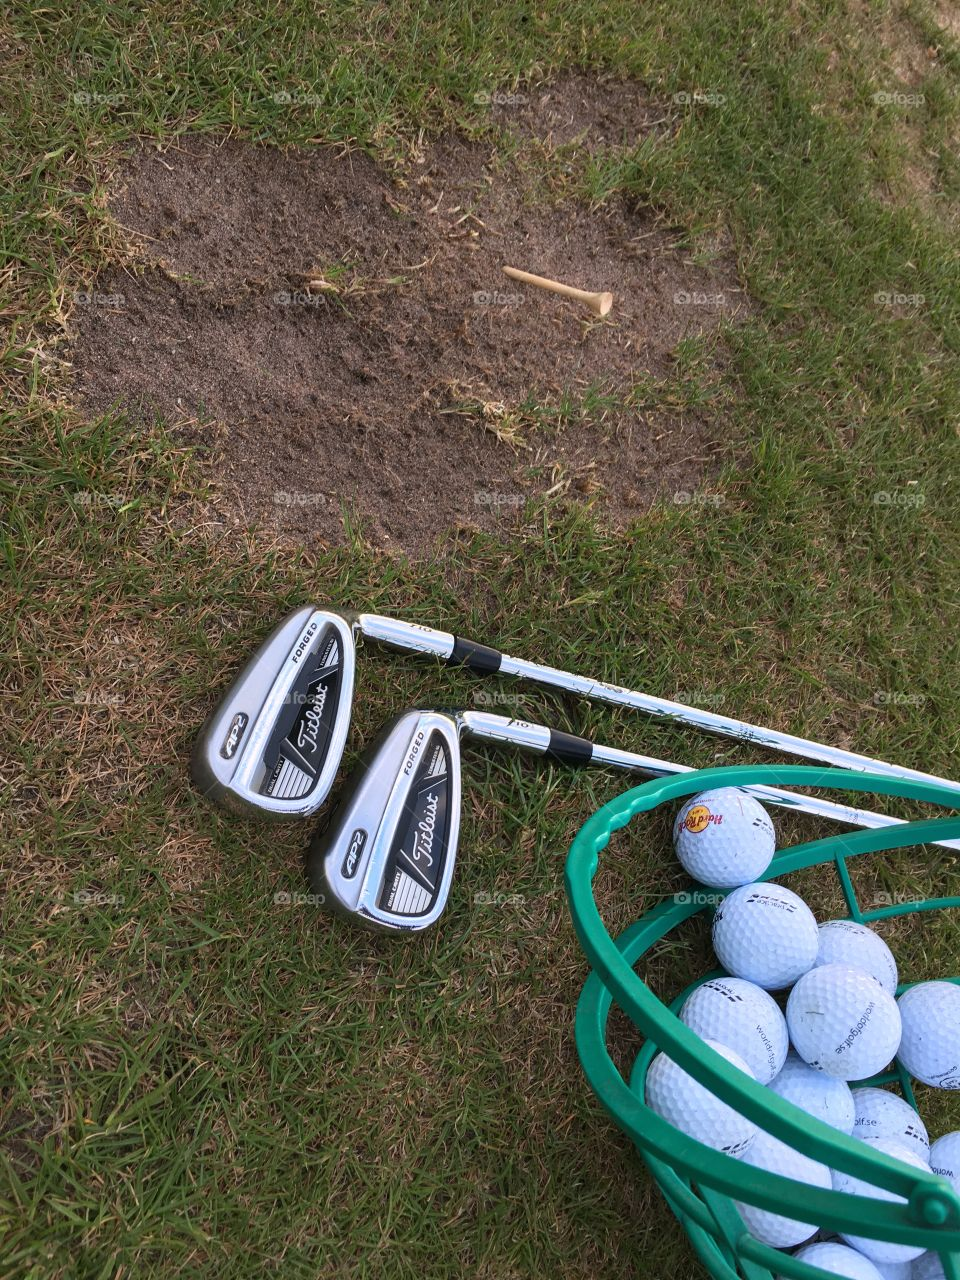 Titleist iron golf clubs and a bucket of driving range balls on the grass surface